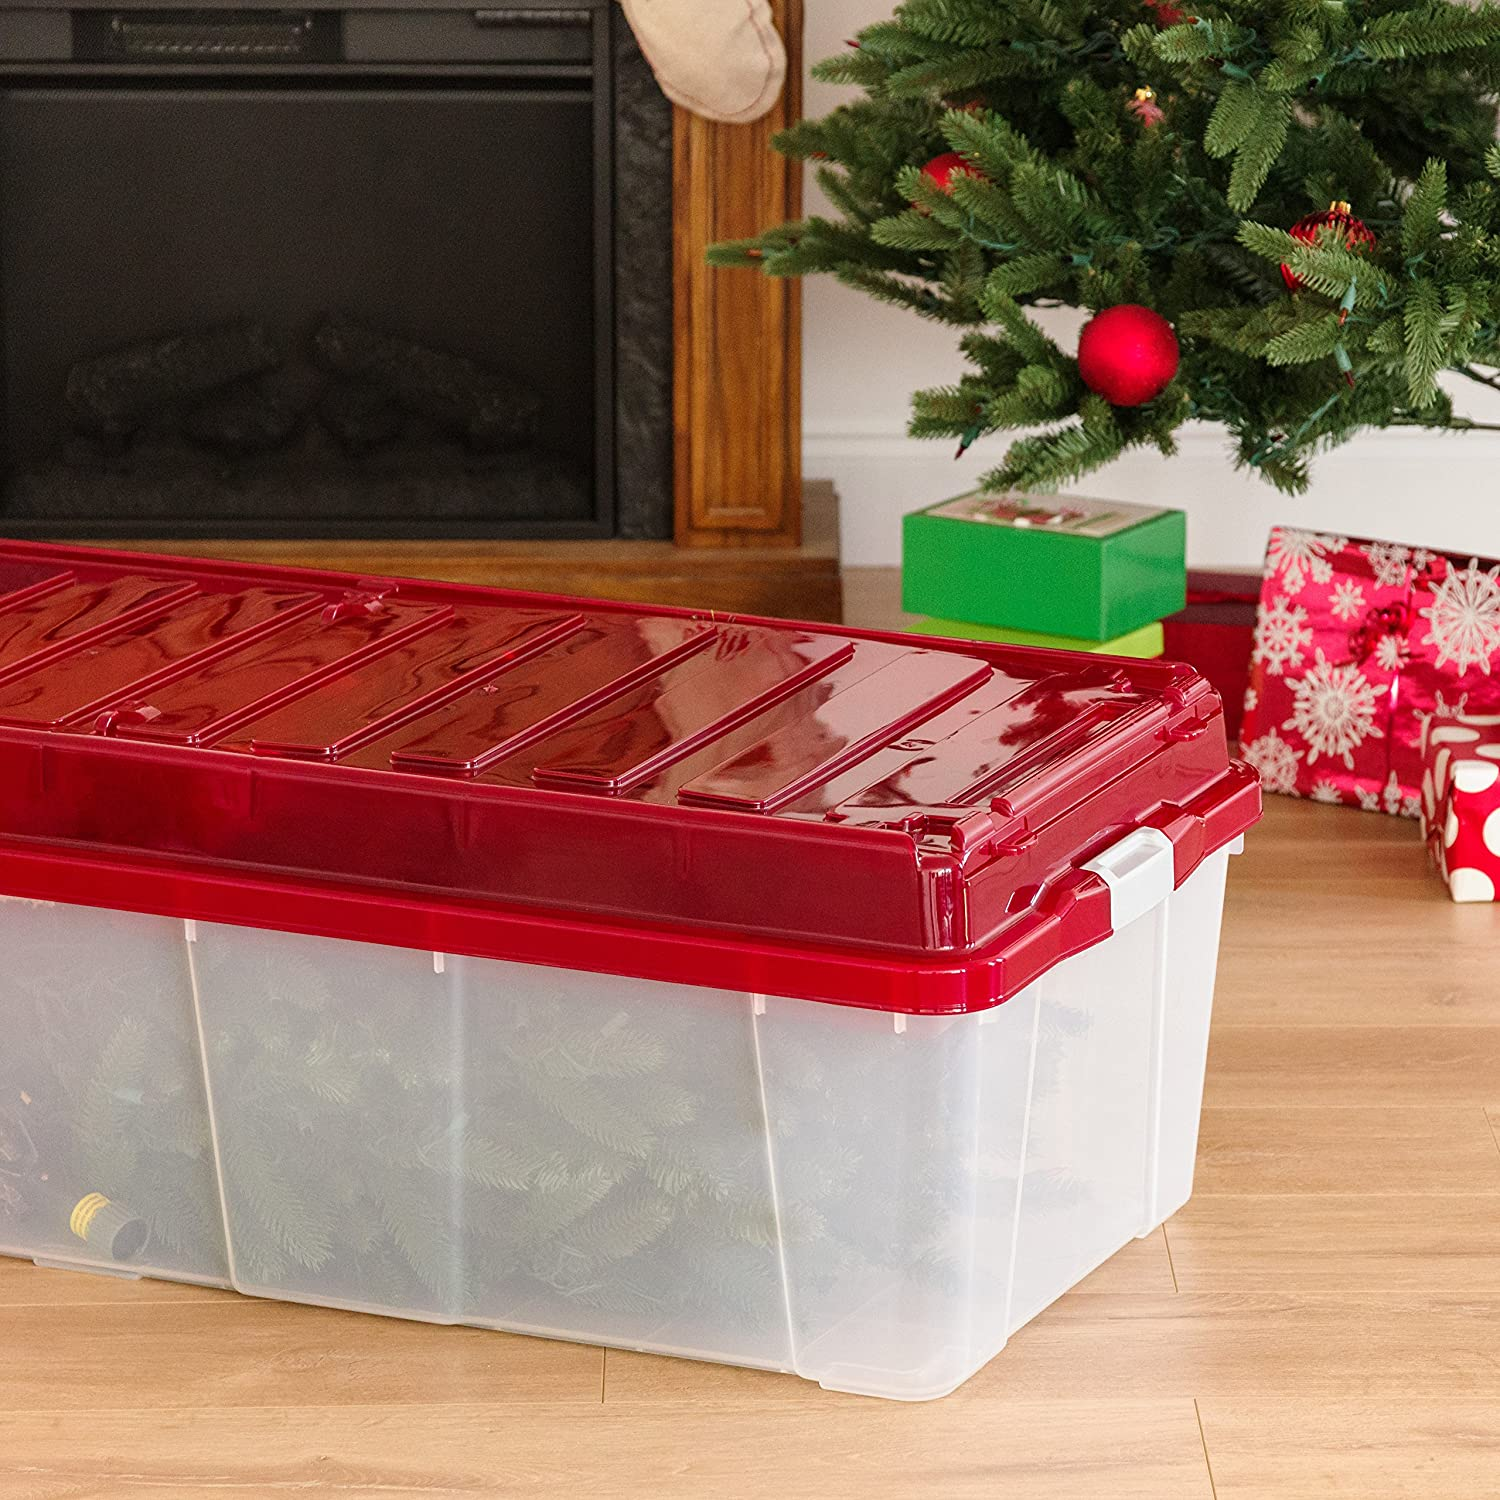 Rubbermaid Storage Container Christmas Tree Www Topsimages Com